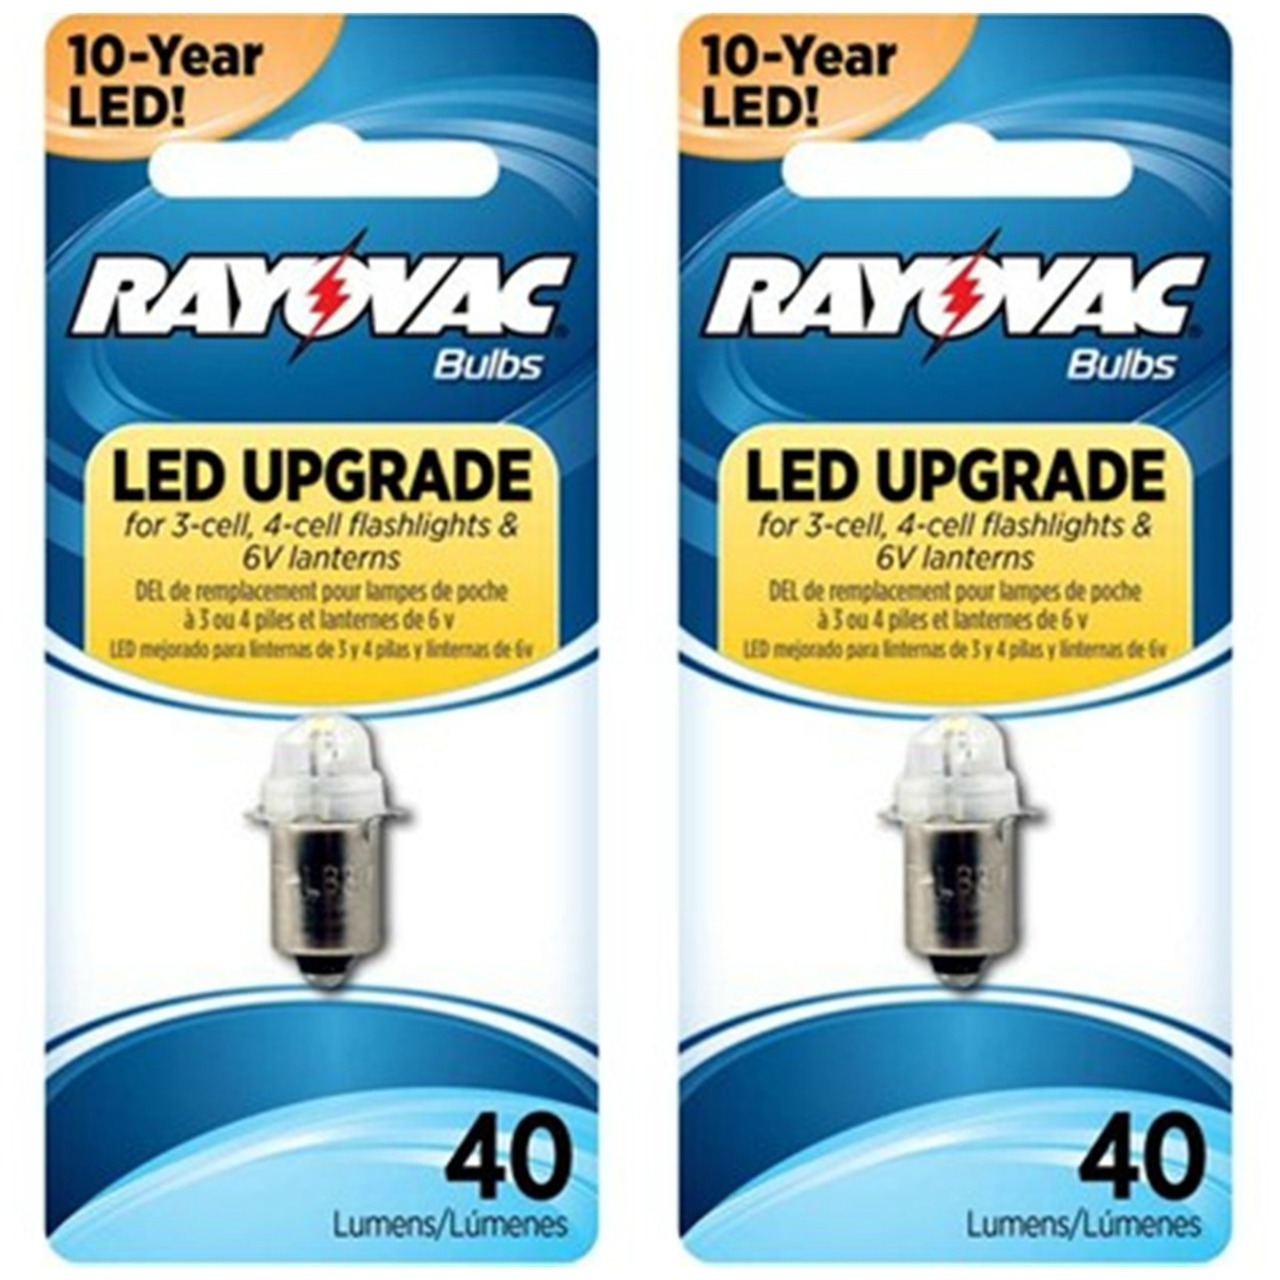 Rayovac LED Upgrade Bulb For 3-Cell  4-Cell Flashlights And Lanterns 4V6VLED -2 Pack + FREE SHIPPING!